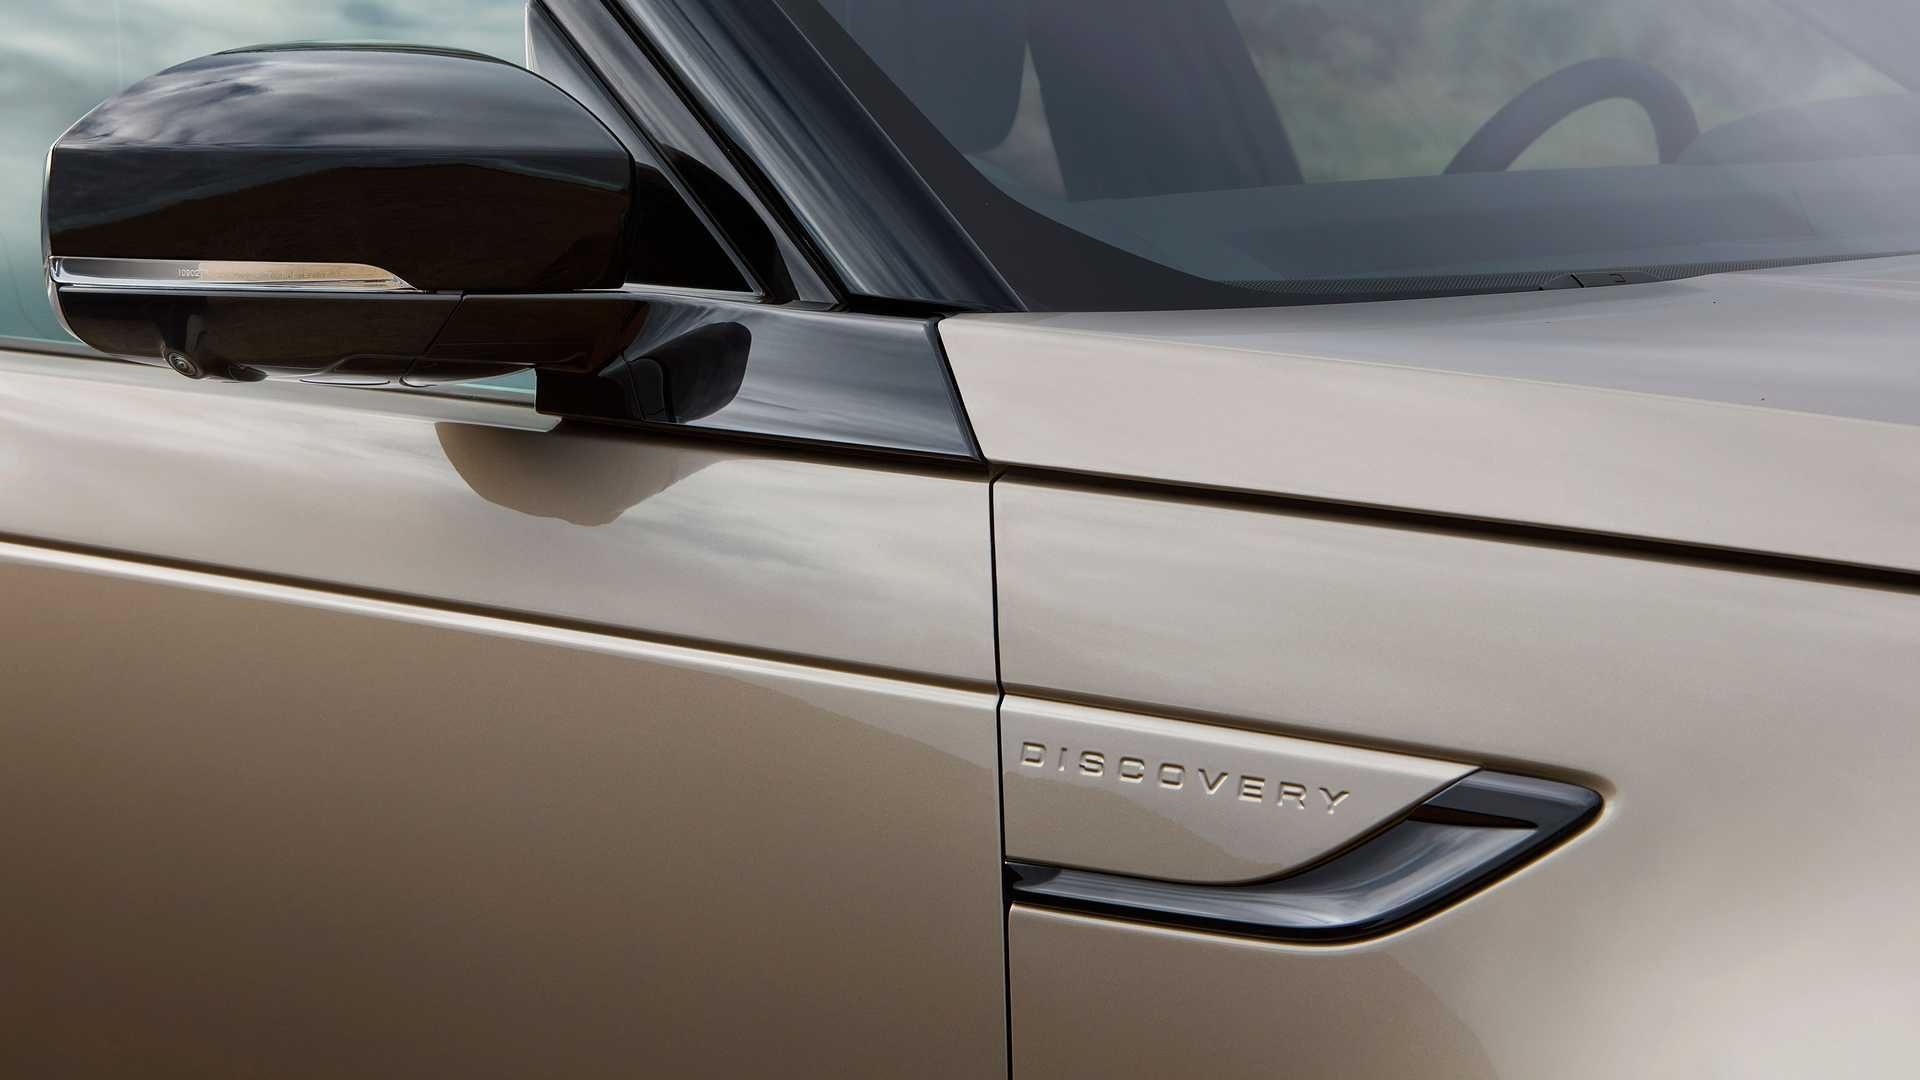 2021-Land-Rover-Discovery-45